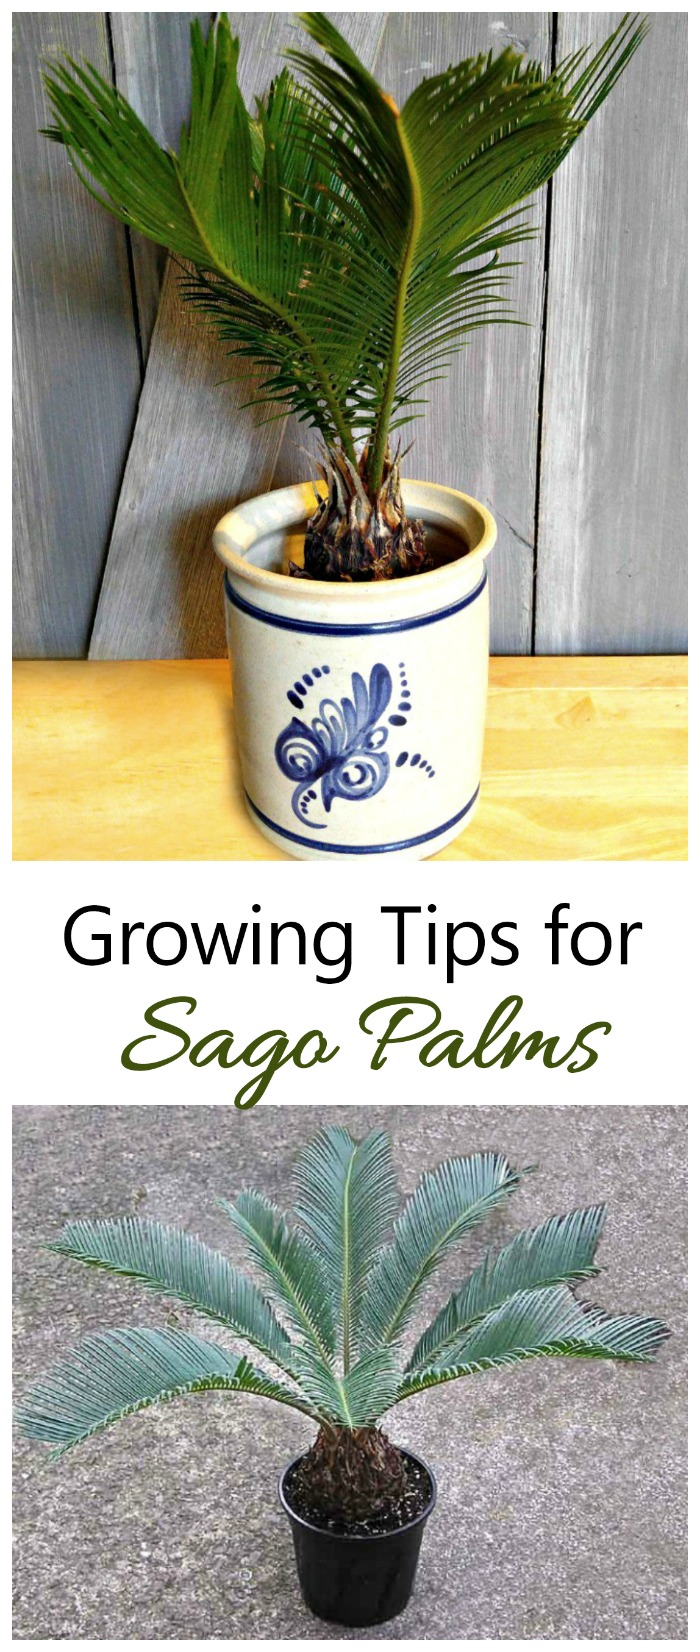 Growing sago palms is great for beginning indoor plant gardeners. #sagopalms